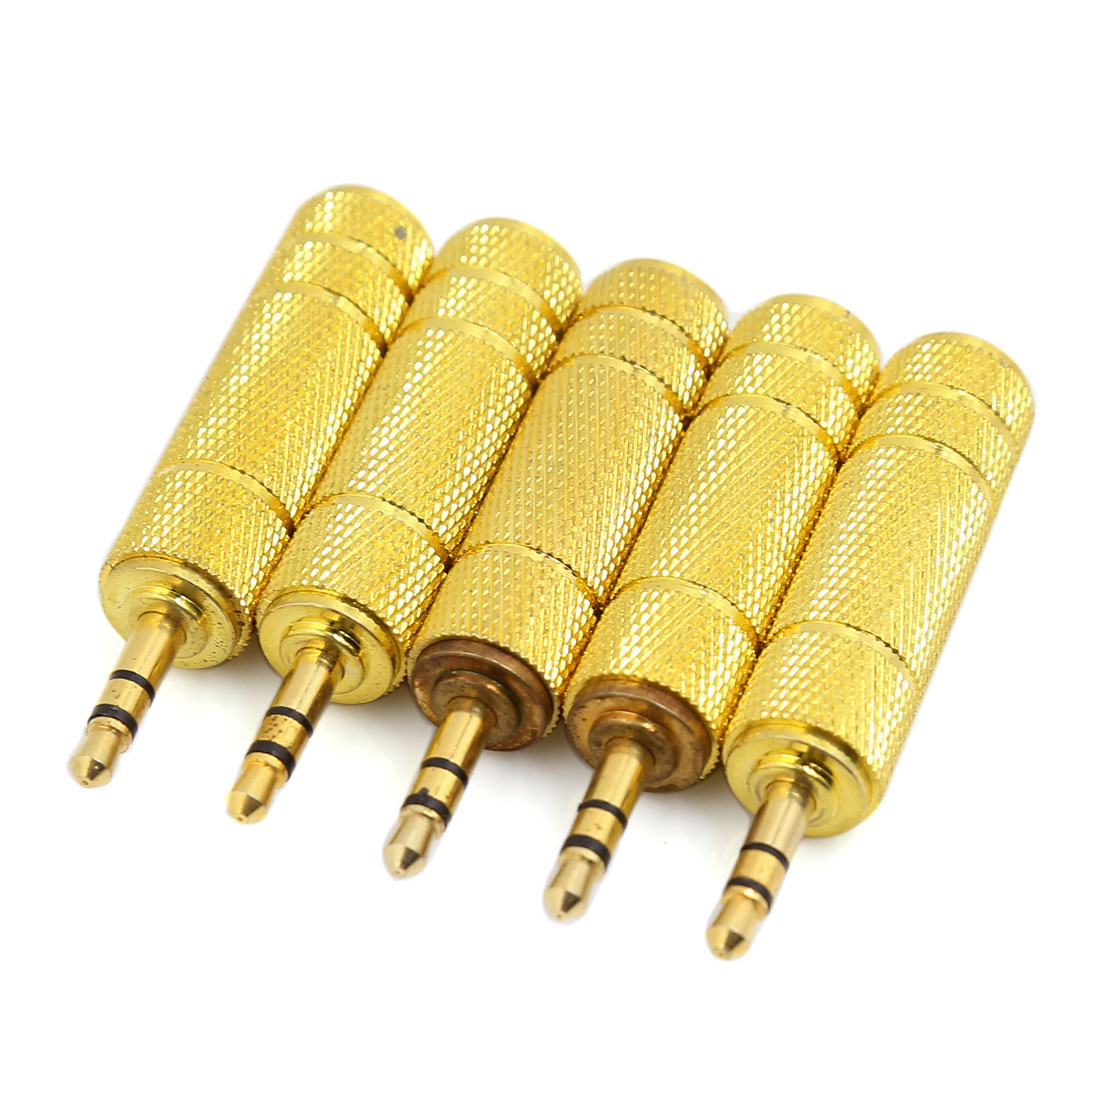 5 Pcs 3.5mm Male to 6.5mm Female Jack F/M Audio Stereo Connector Adapter 55mm Length